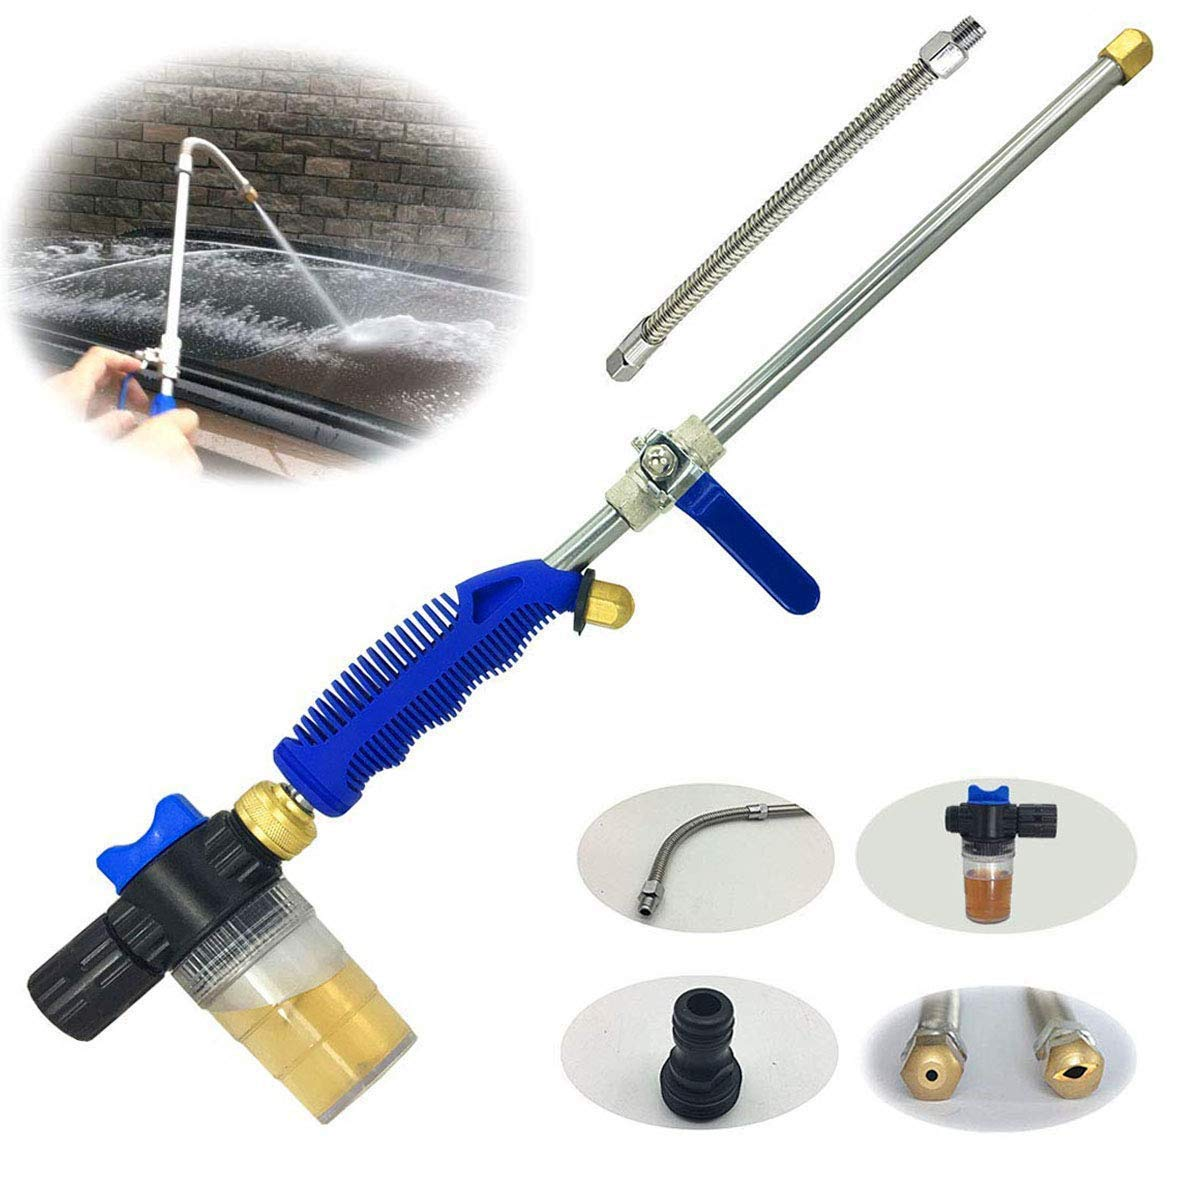 Hydro Jet High Pressure Glass Cleaner - 27'' Extendable Power Washer Wand, Water Hose Attachment Nozzle, Flexible Auto Washer, Snow Foam Cannon, Watering Sprayer, Car Wash, Window Washing, 2 Tips by Buyplus (Image #7)